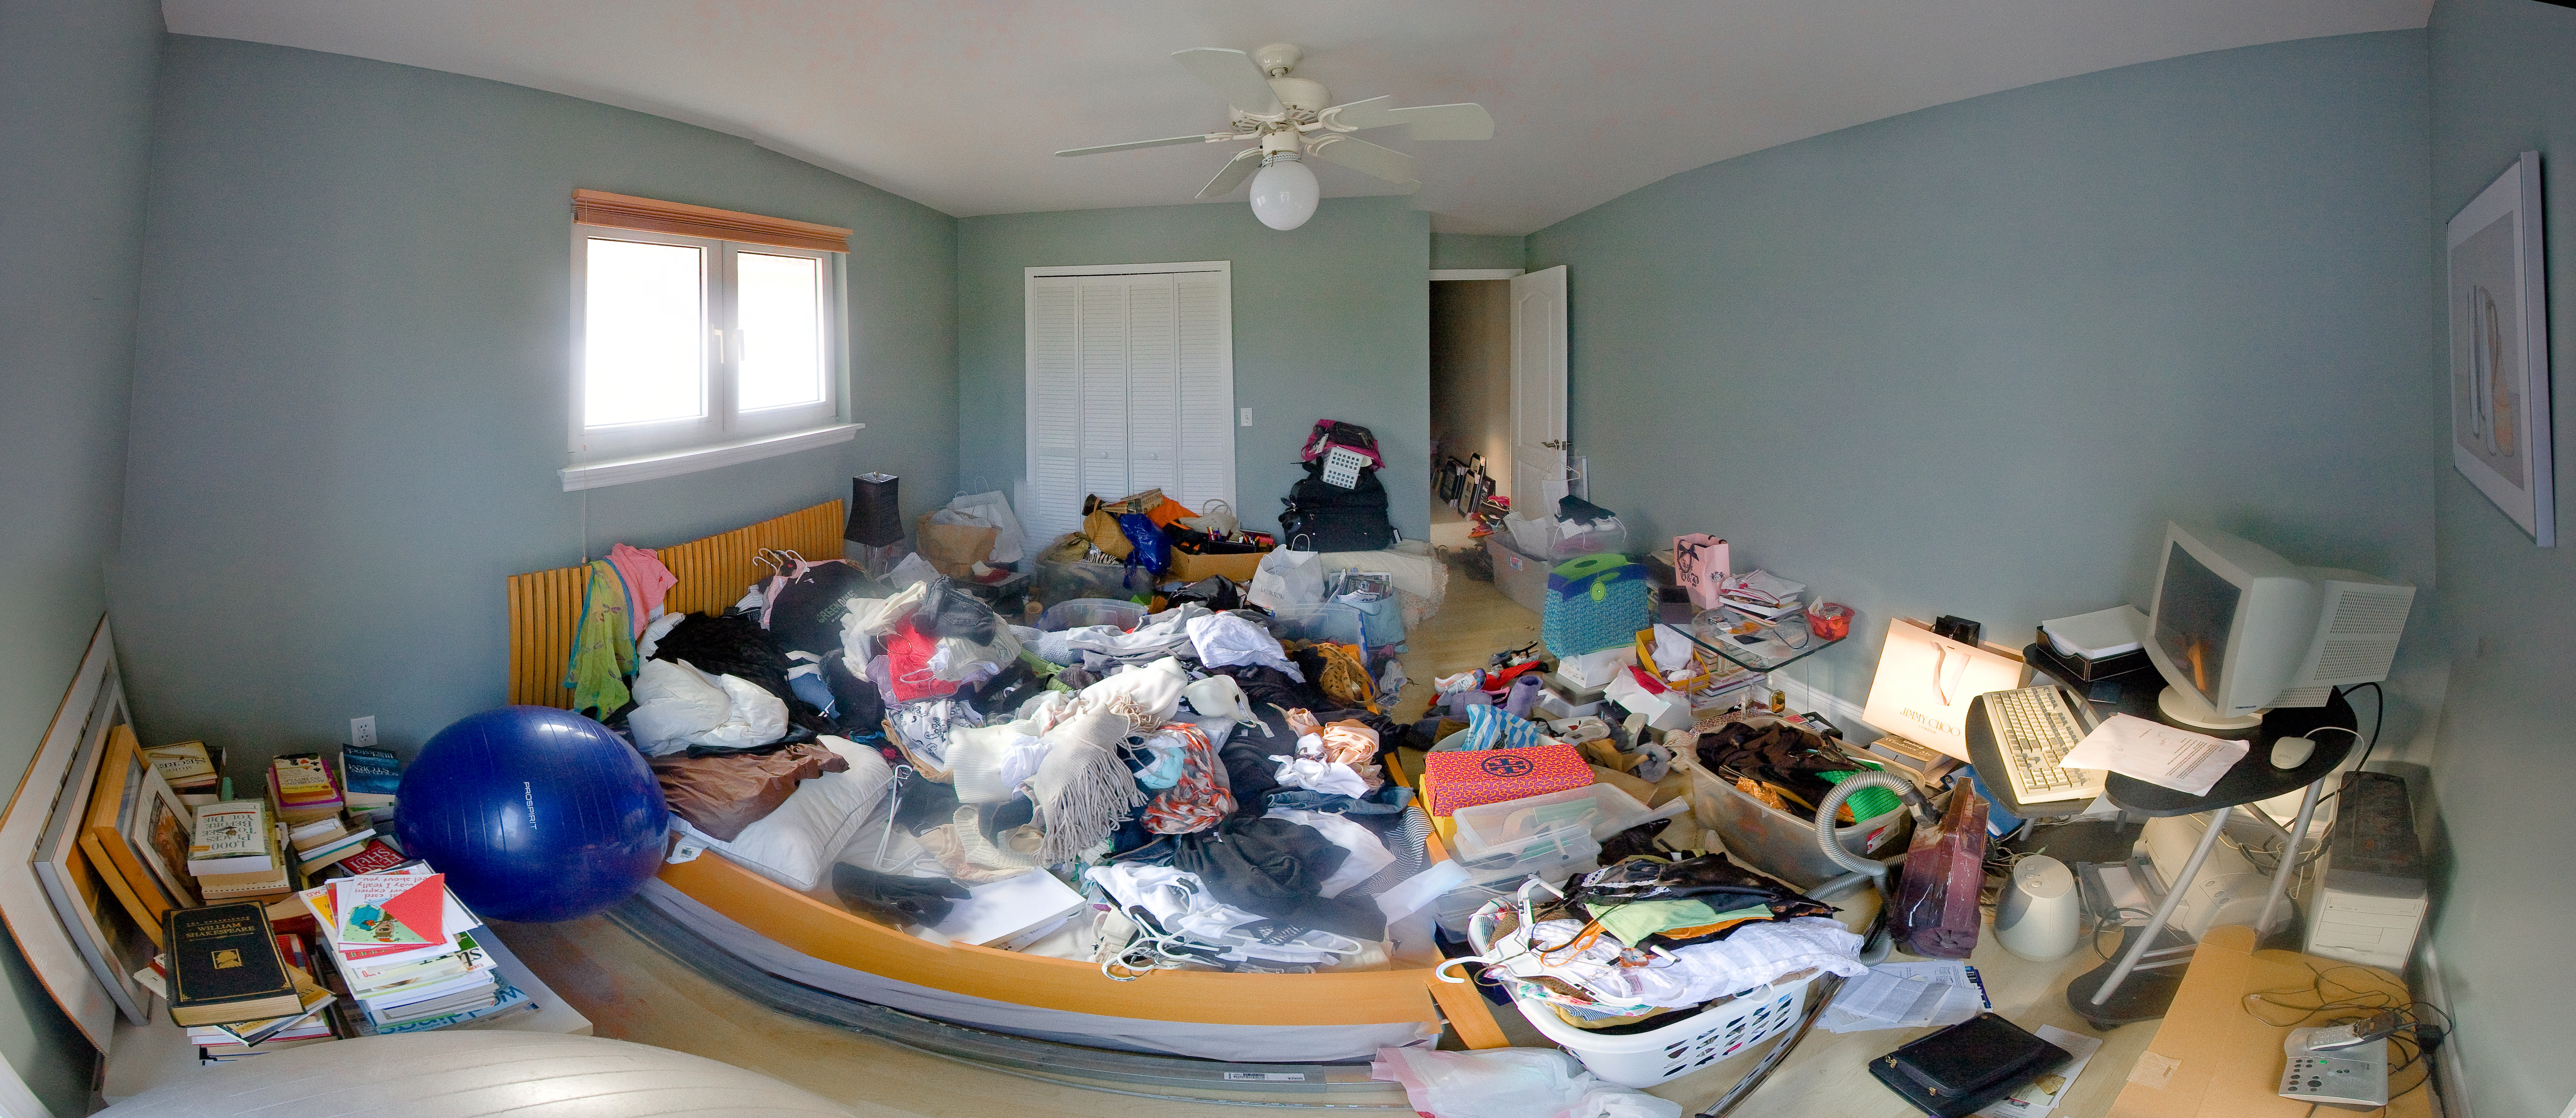 how to clean an extremely messy house